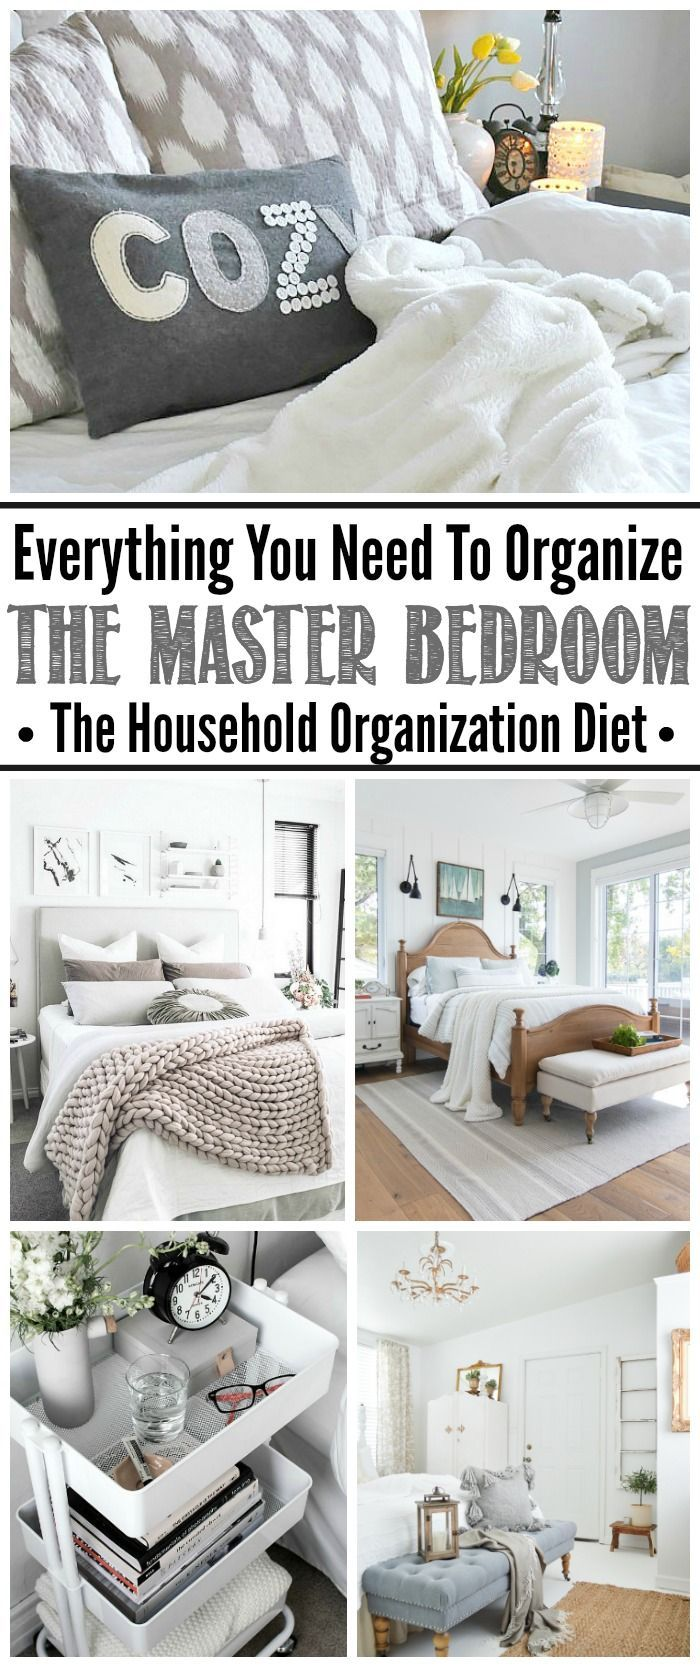 Genial Master Bedroom Organization Ideas. Tips, Tricks, And Tutorials To Create An  Organized And Relaxing Master Bedroom Retreat.